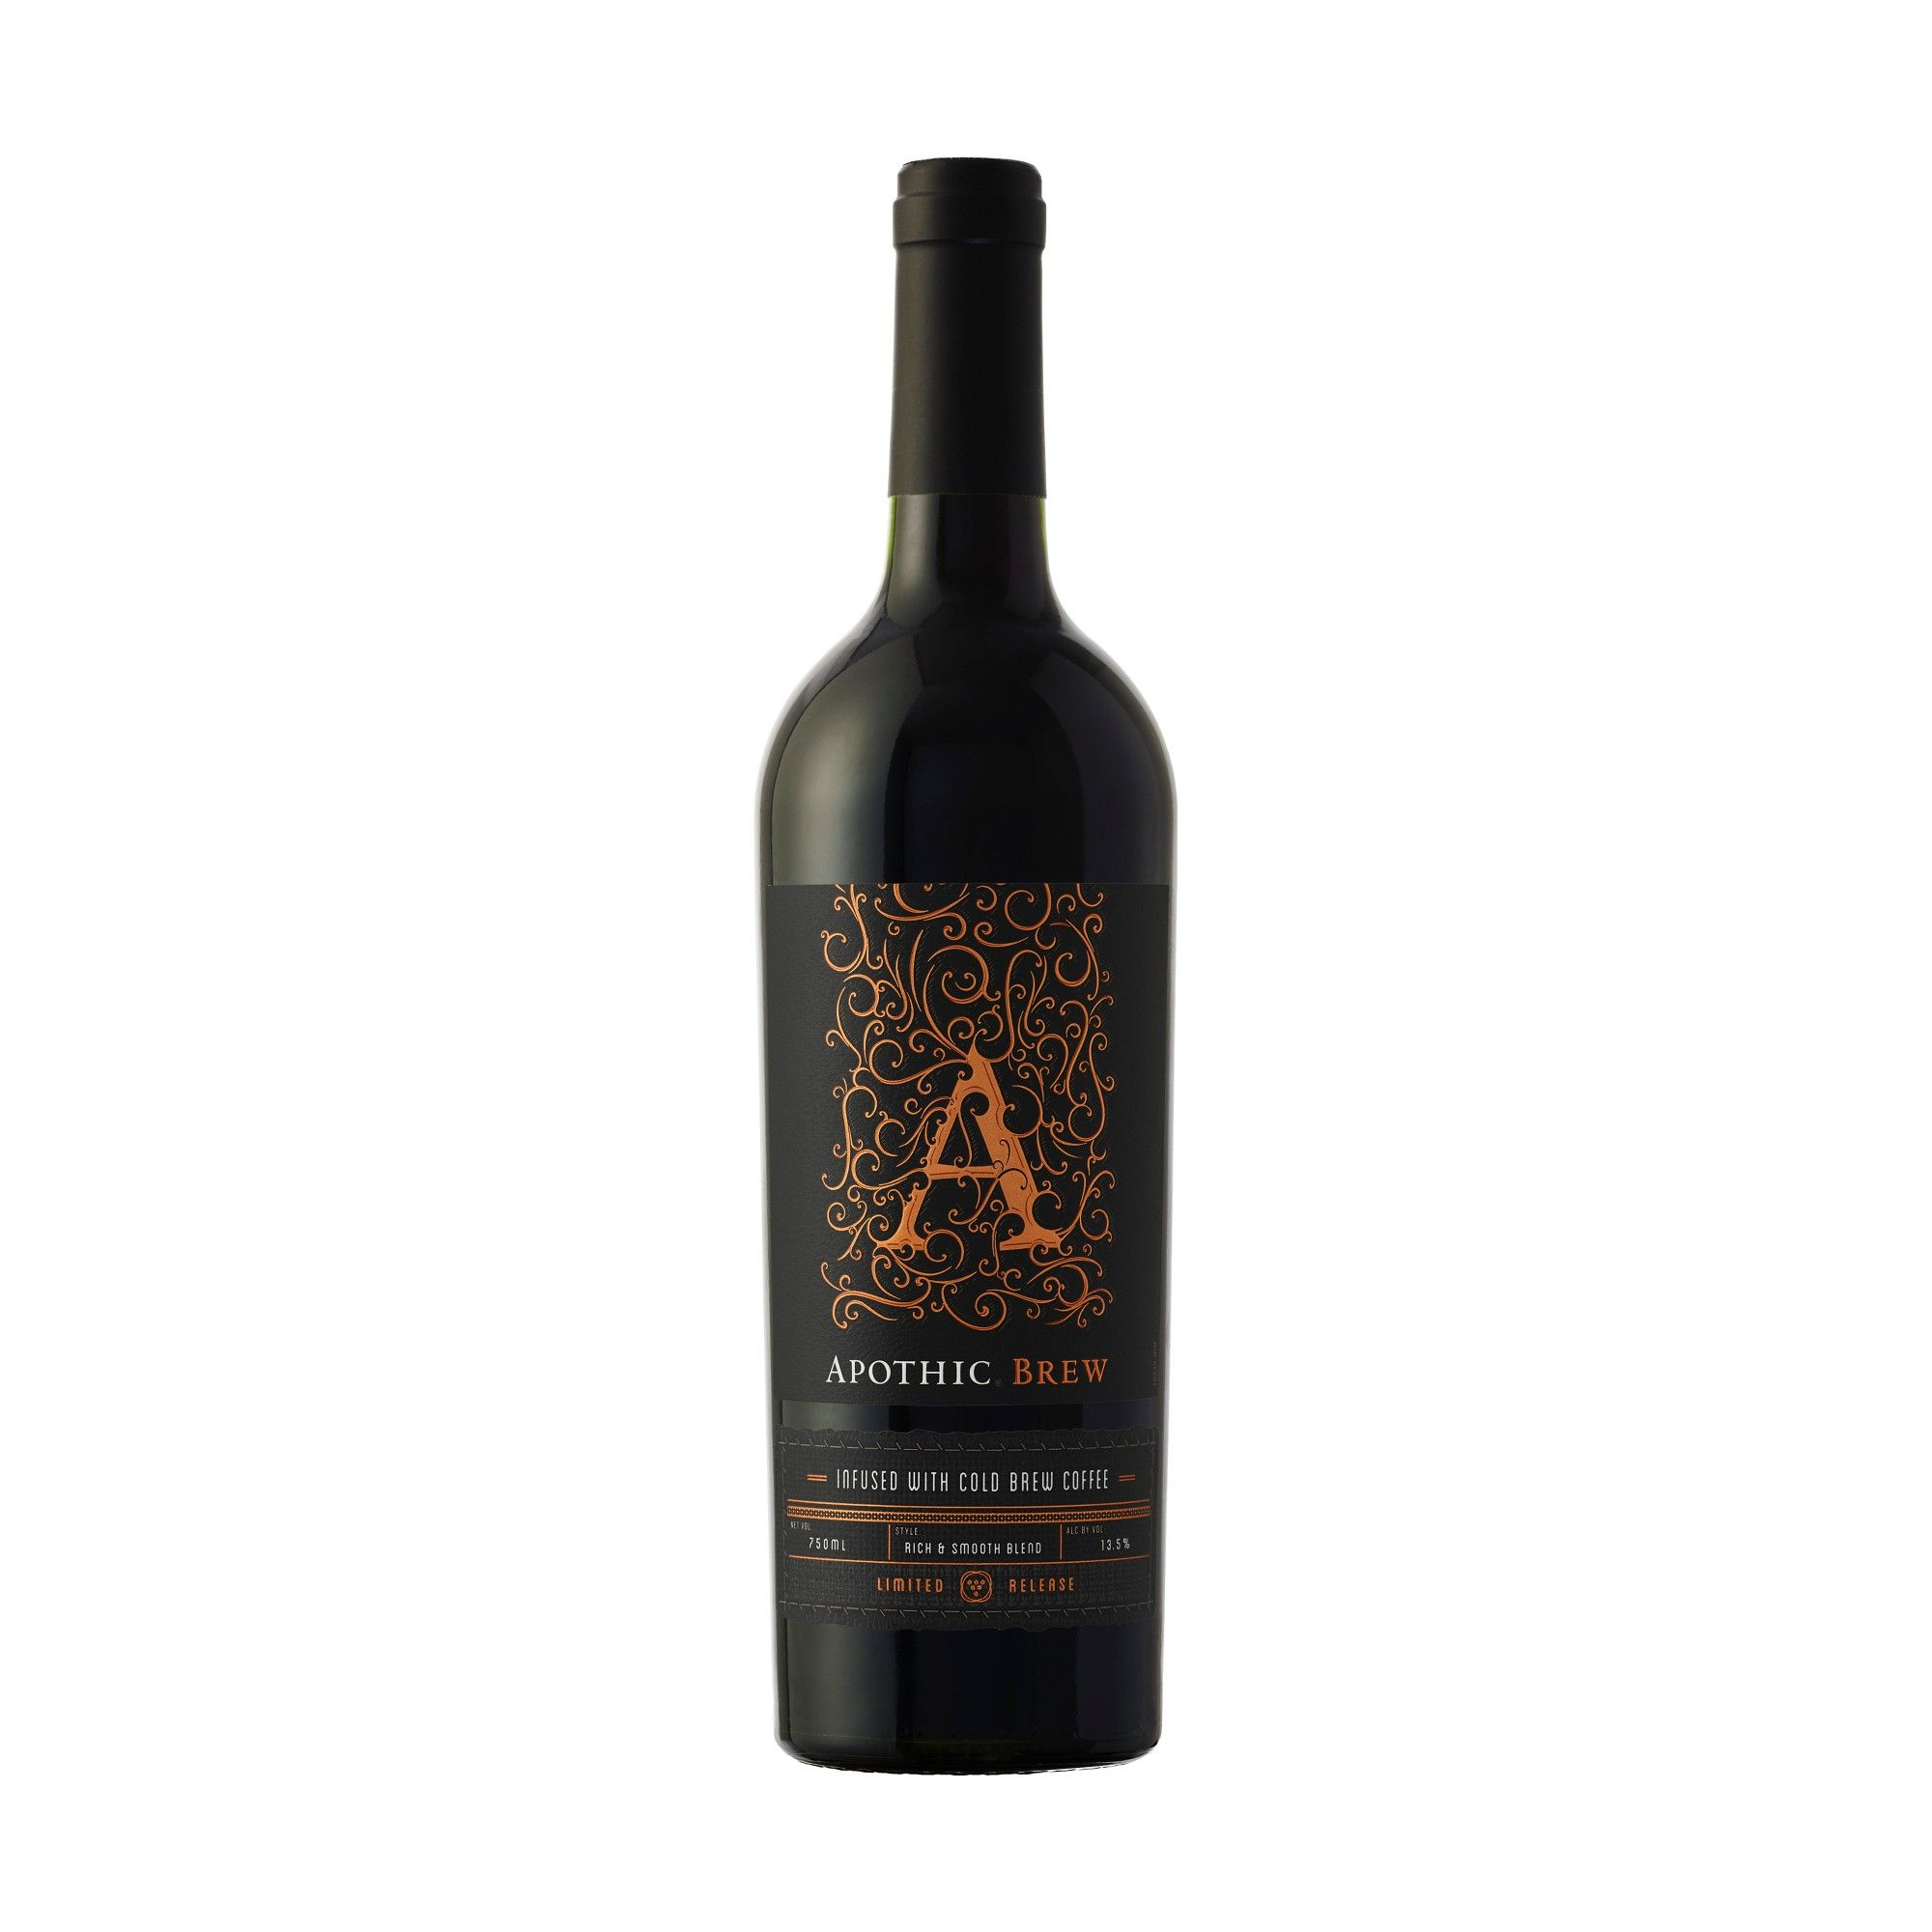 Apothic Brew Red Blend 750ml Bottle Red blend wine